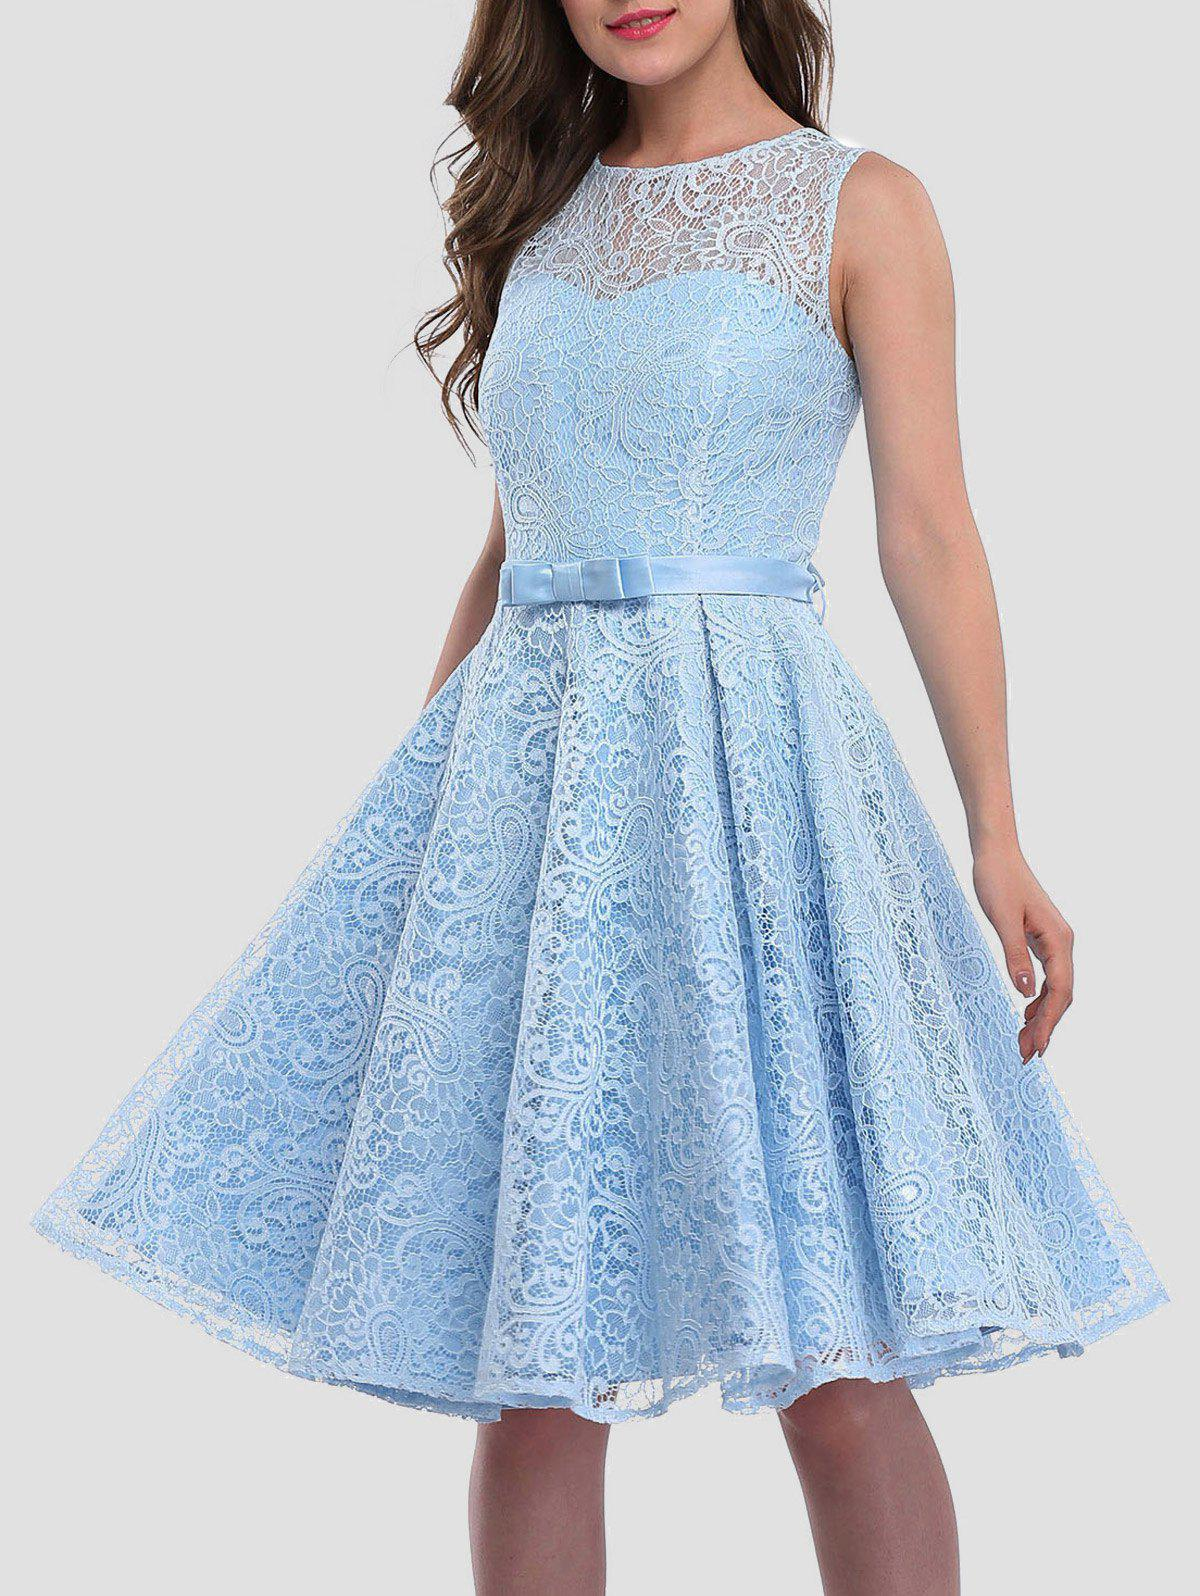 b9d21167e4d1 2019 Lace Skater Cocktail Homecoming Formal Dress